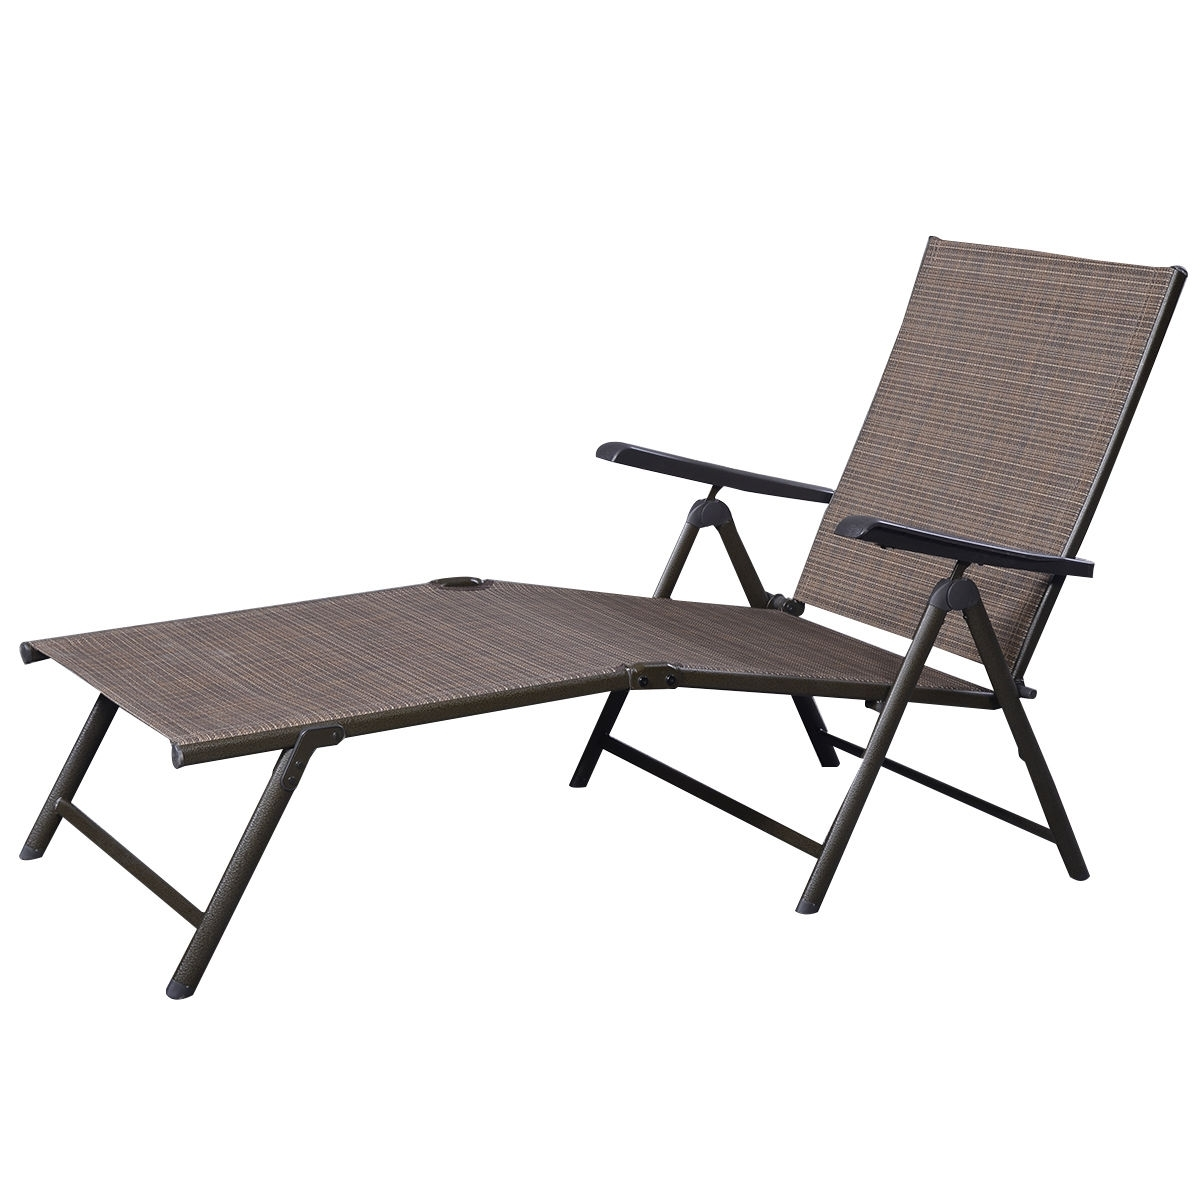 Pool Chaise Lounge Chairs Throughout Famous Outdoor Adjustable Chaise Lounge Chair – Sunloungers – Outdoor (View 5 of 15)